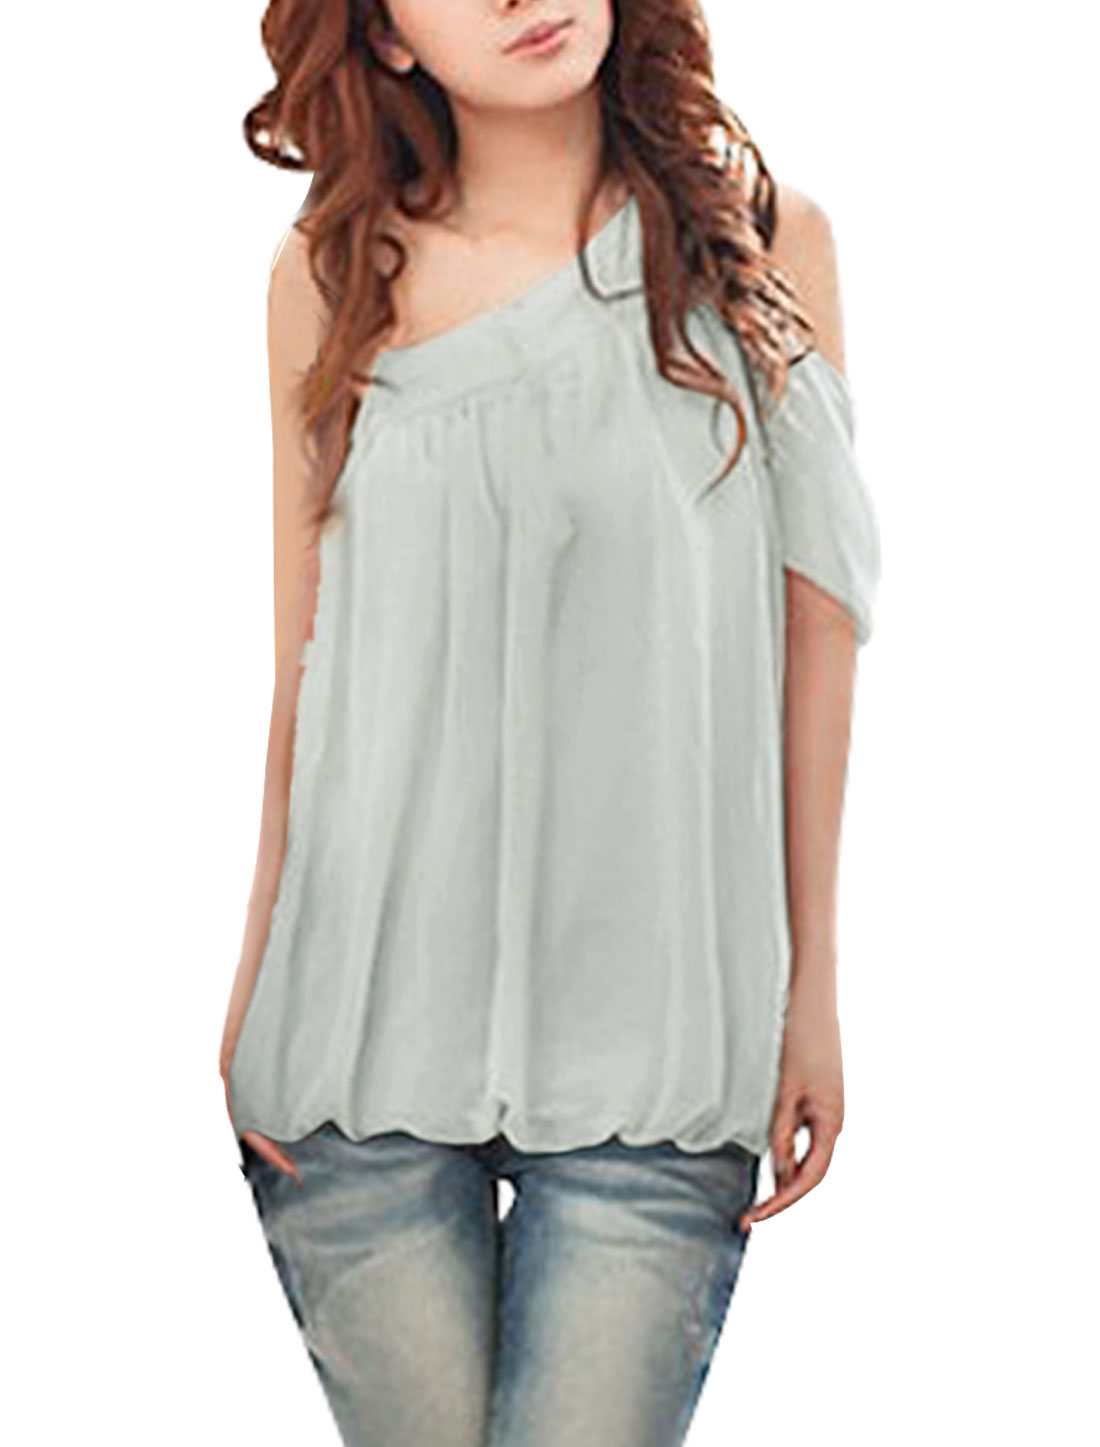 Lady Pale Gray One Shoulder Asymmetrical Neckline Semi Sheer Blouse S